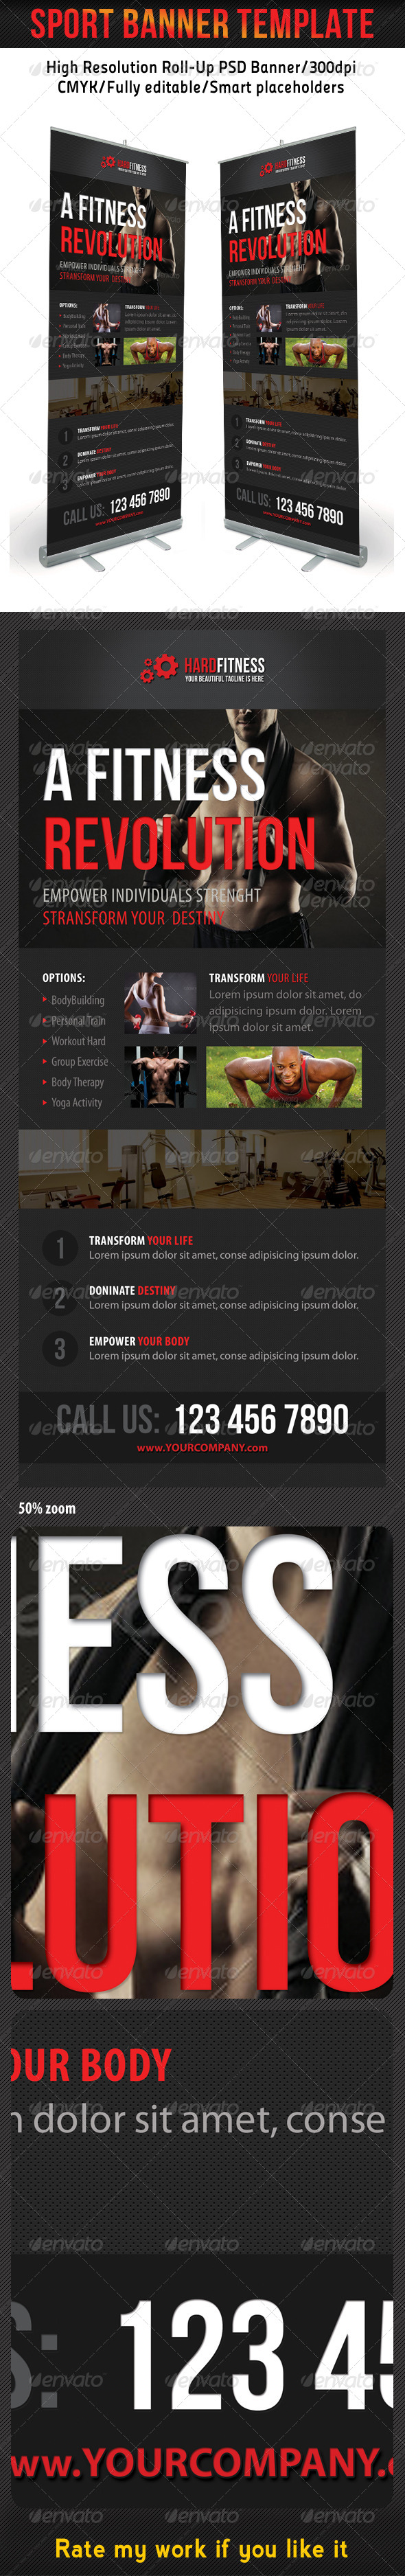 GraphicRiver Sport Banner Template 16 7291302